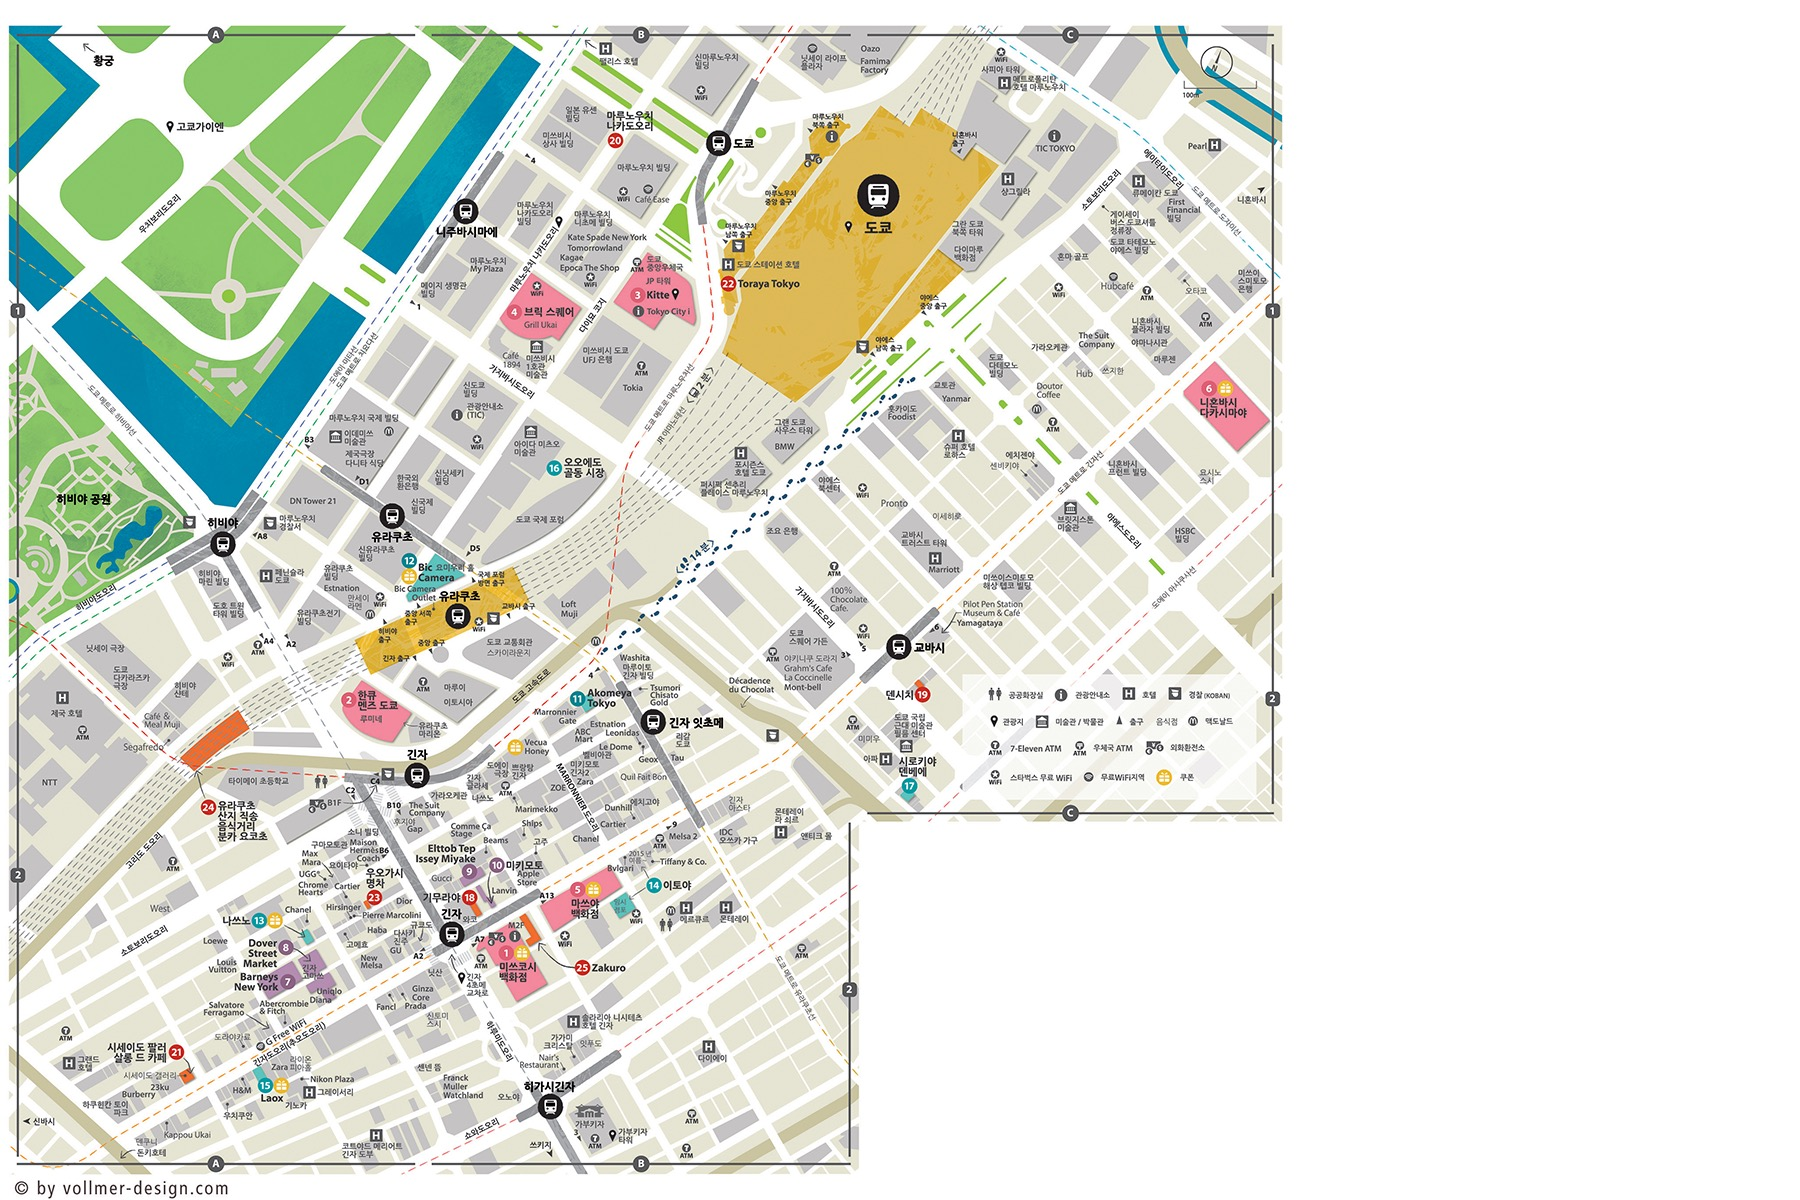 Tokyo Station Area Map